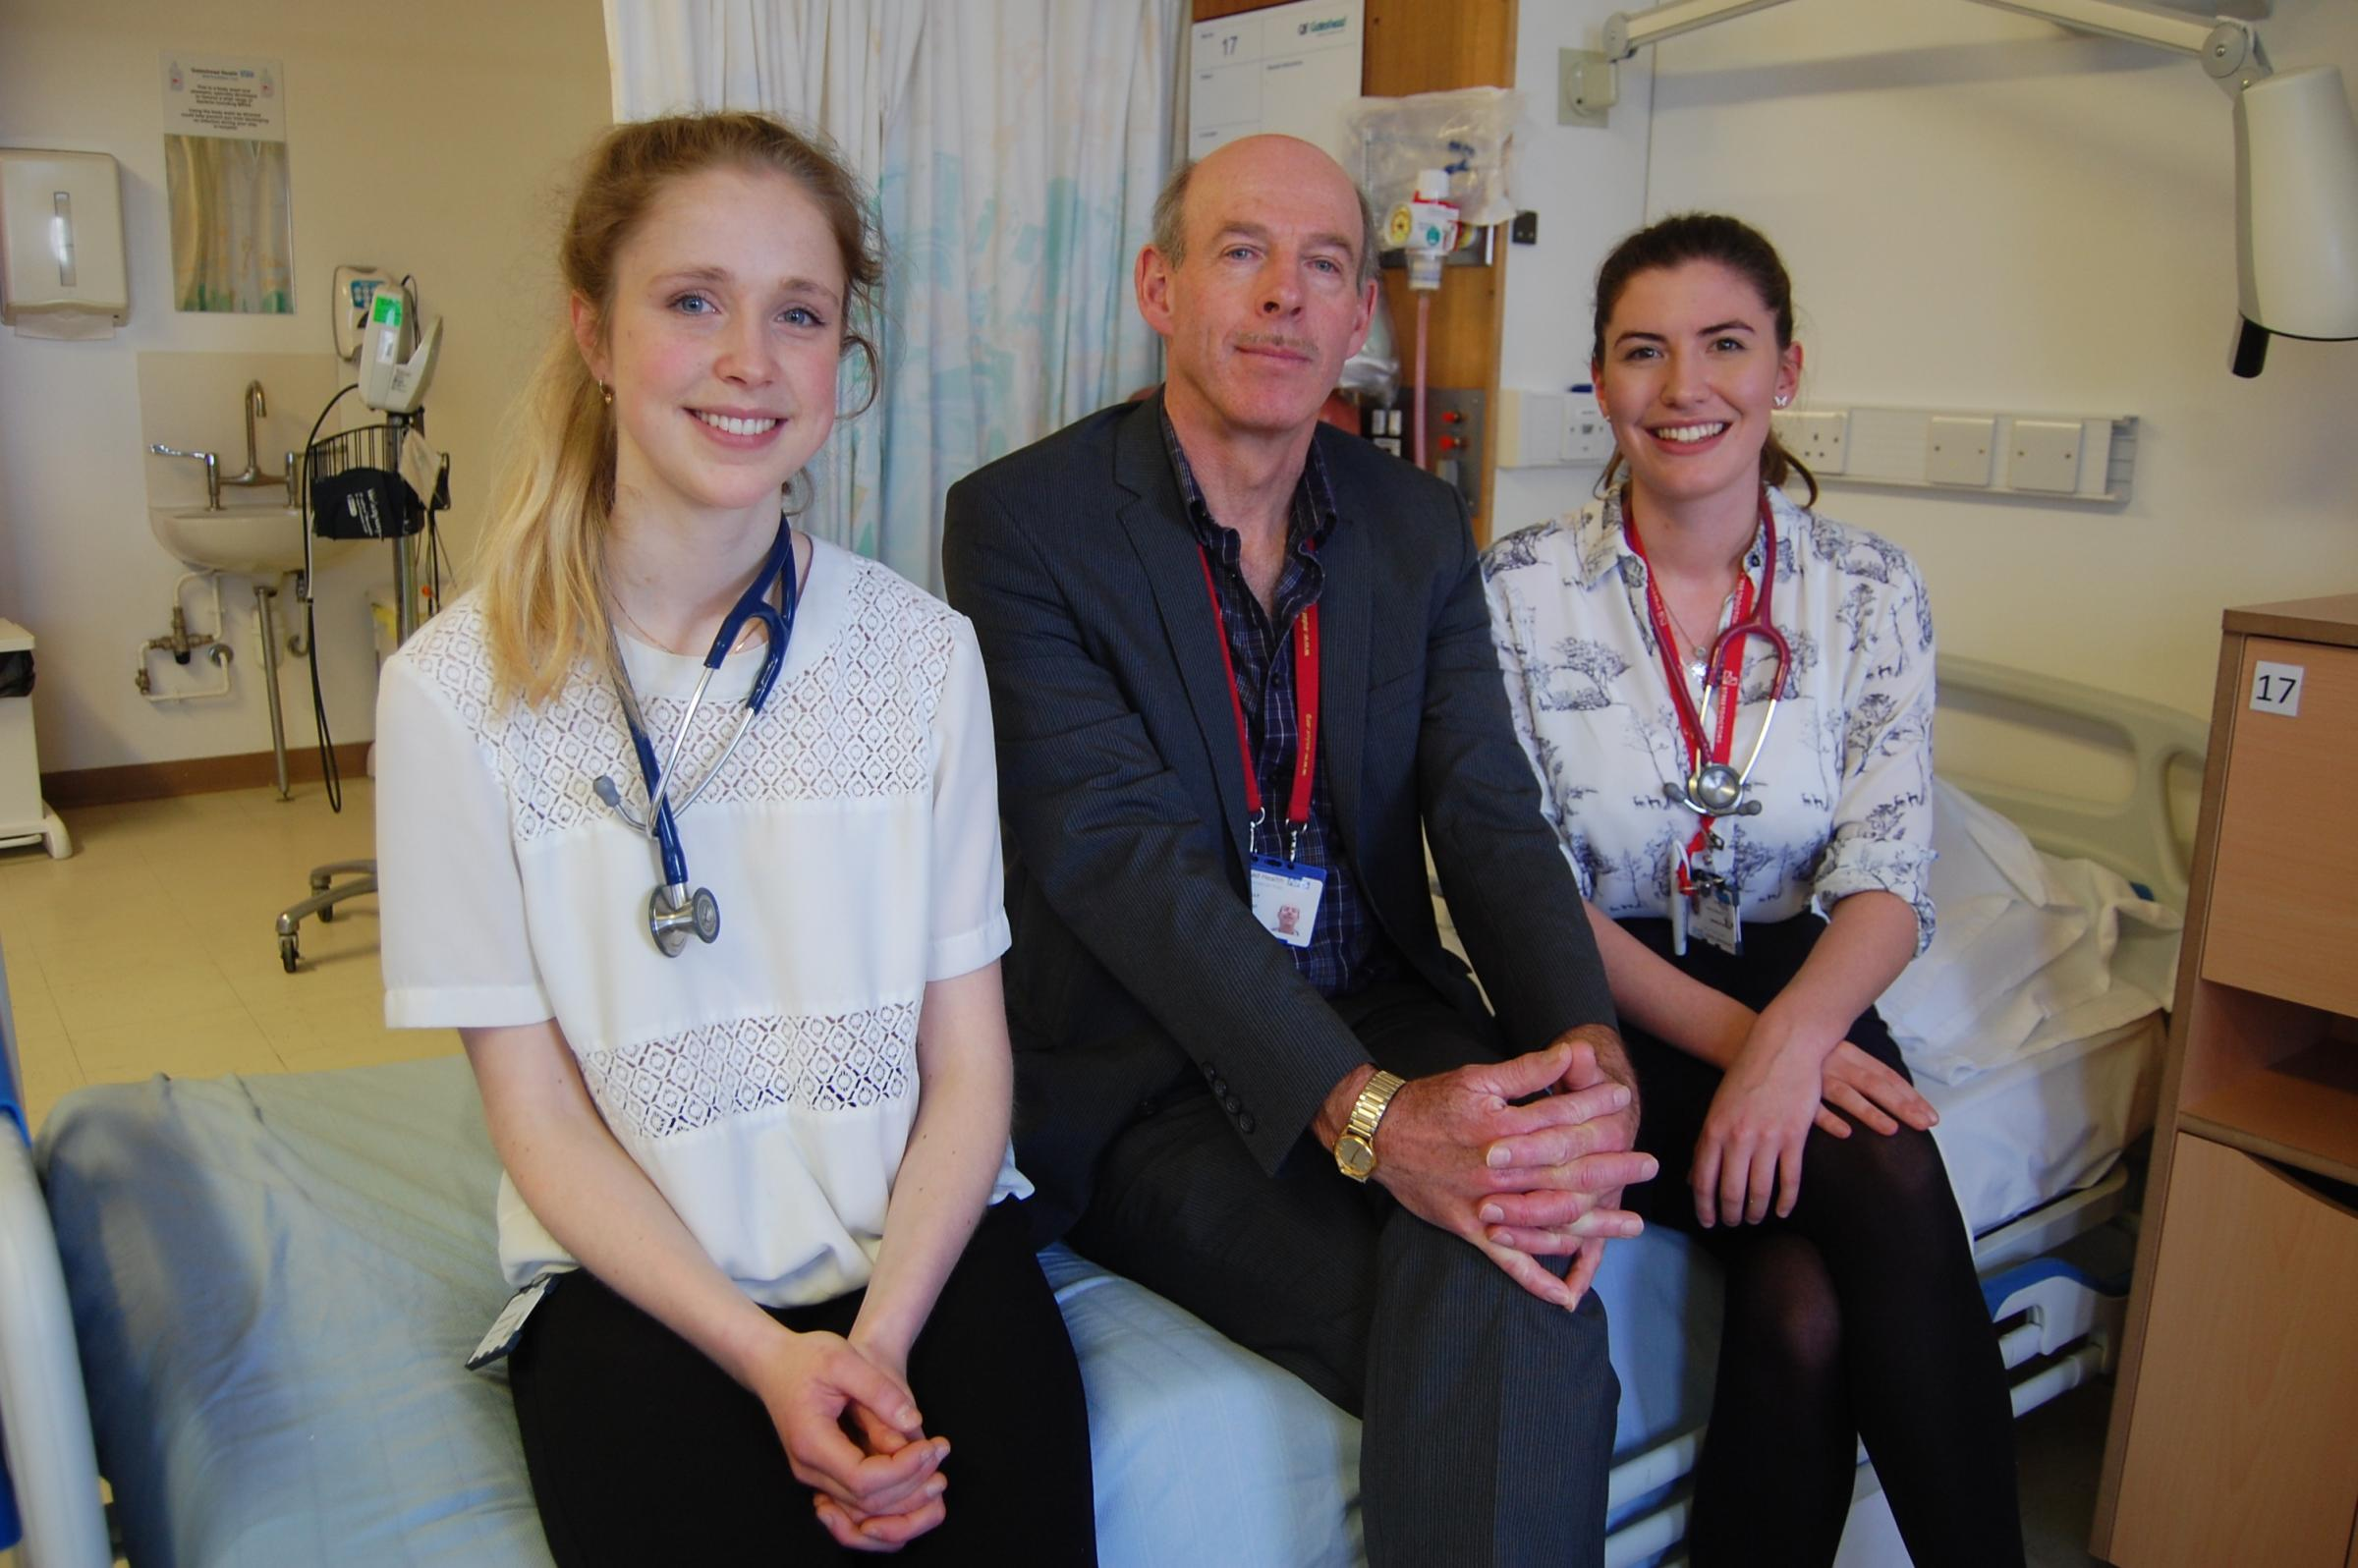 CARE: Clive Kelly, centre, a consultant in acute medicine at the Queen Elizabeth Hospital in Gateshead, with medical students, Lauren McAnallen, left, and Caitlin Brown. Picture by GAVIN HAVERY